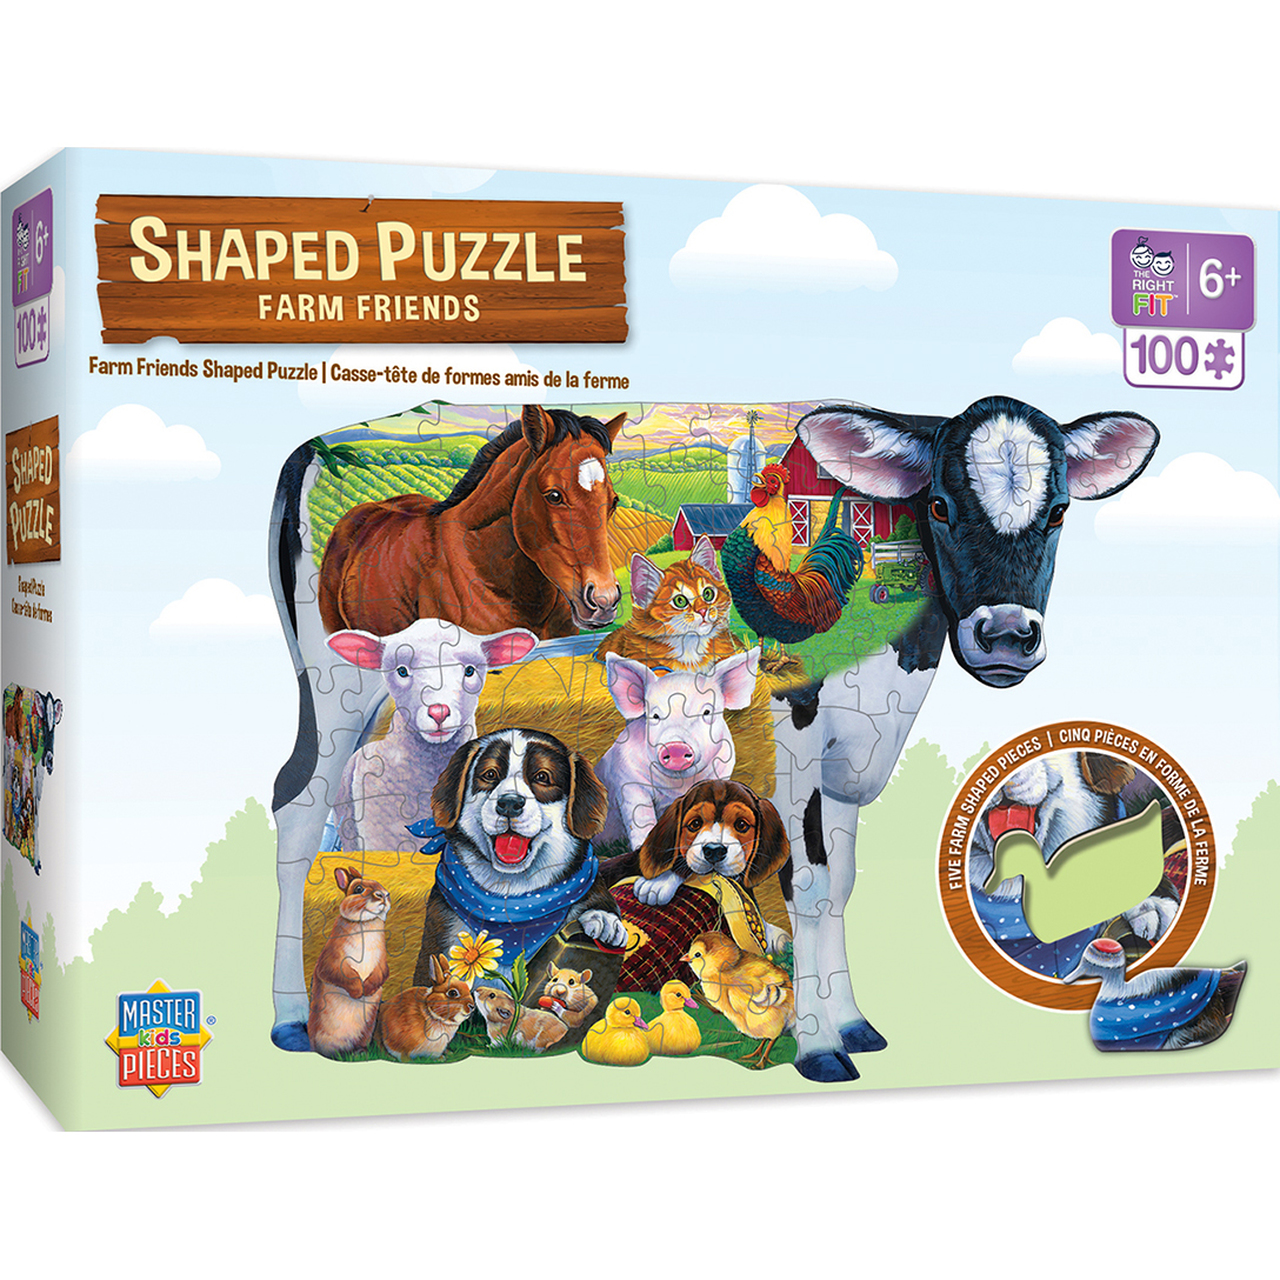 SHAPED FARM FRIENDS RIGHT FIT - 100 PIECE KIDS PUZZLE BY JENNY NEWLAND